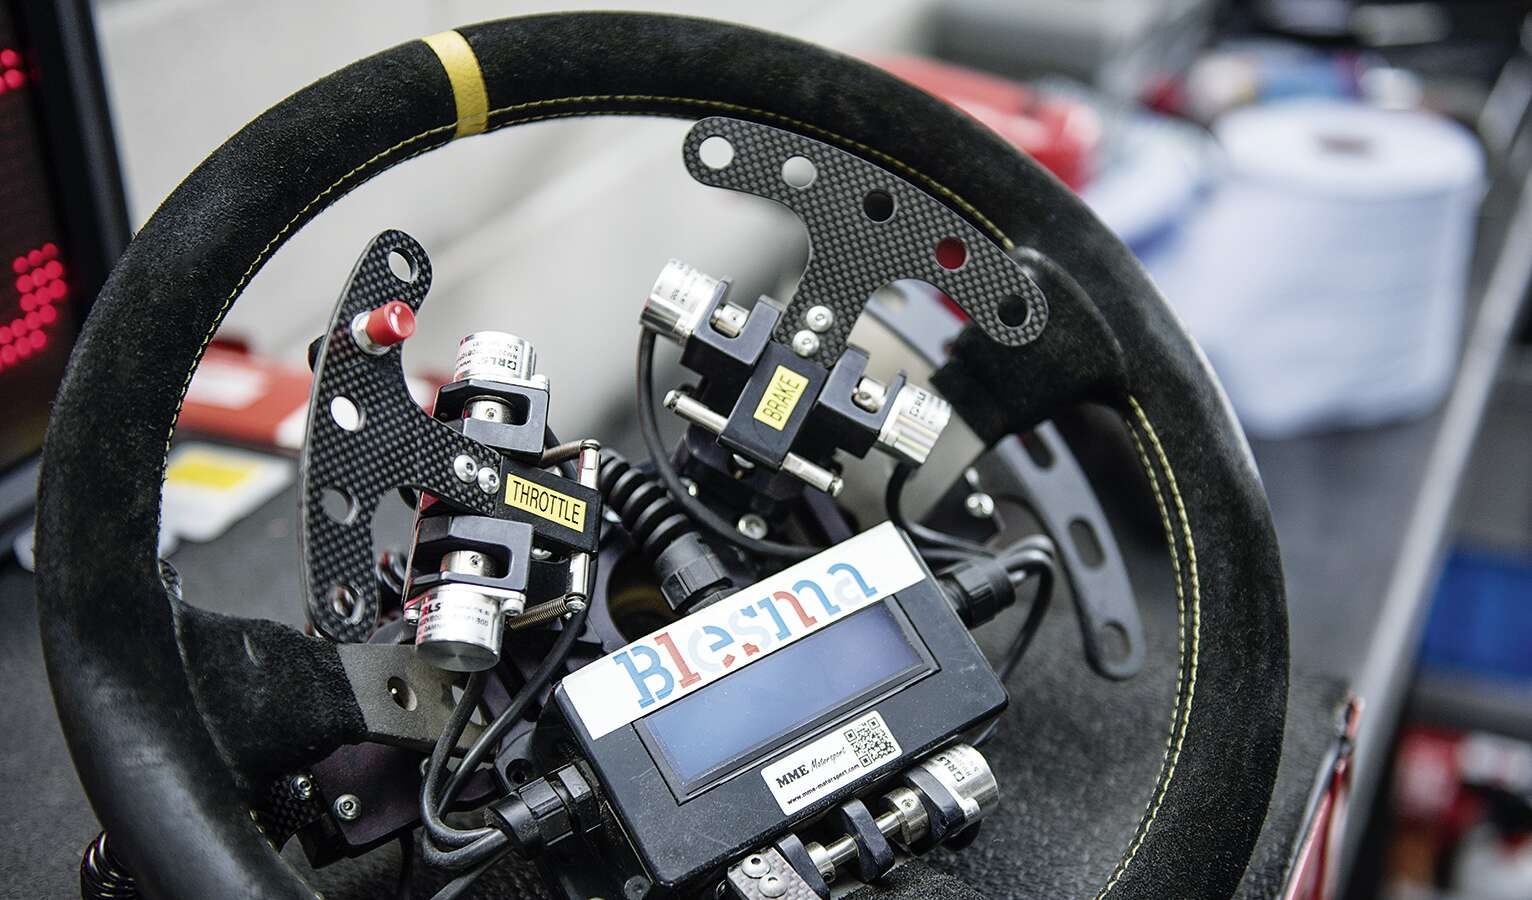 The specially adapted steering wheel can be removed easily if necessary and replaced with a normal one – which allows the racing car to be flexibly adapted for drivers with and without handicaps.